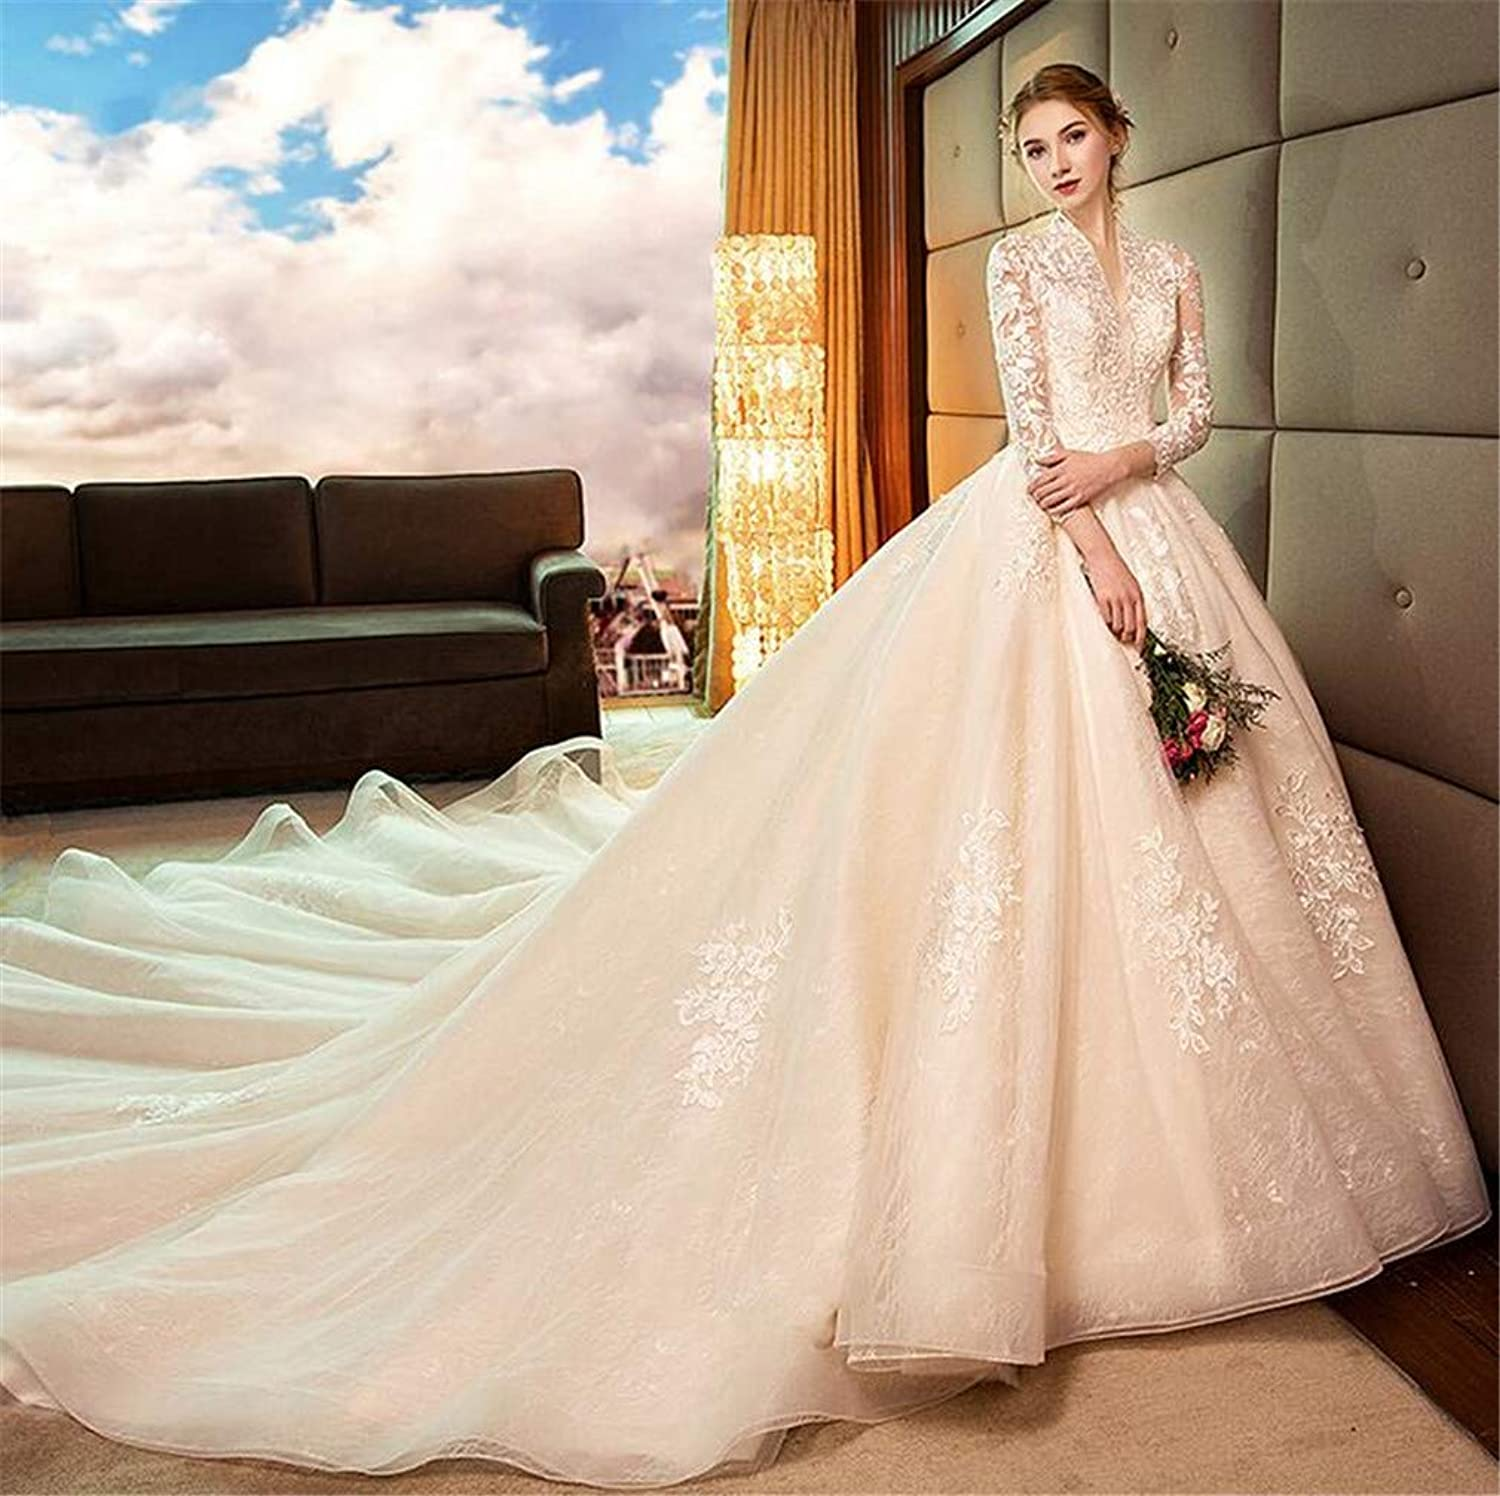 Wedding Dresses Bride Gown Women Dresses VNeck Slim Princess Dream Sexy Long Tail Wedding Evening Party